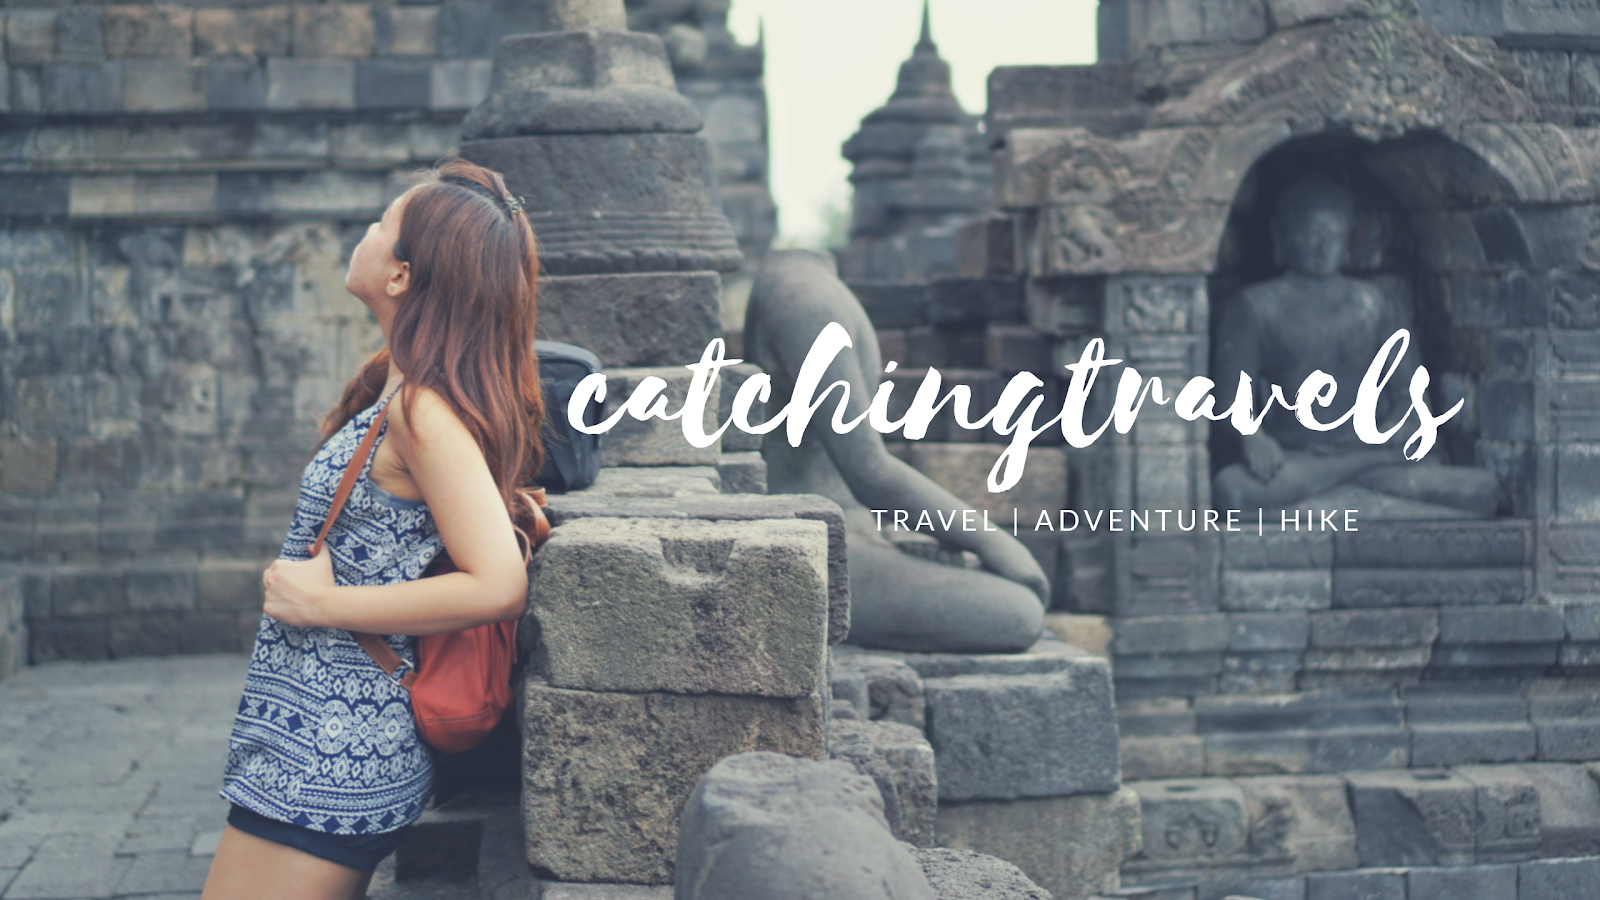 Catchingtravels